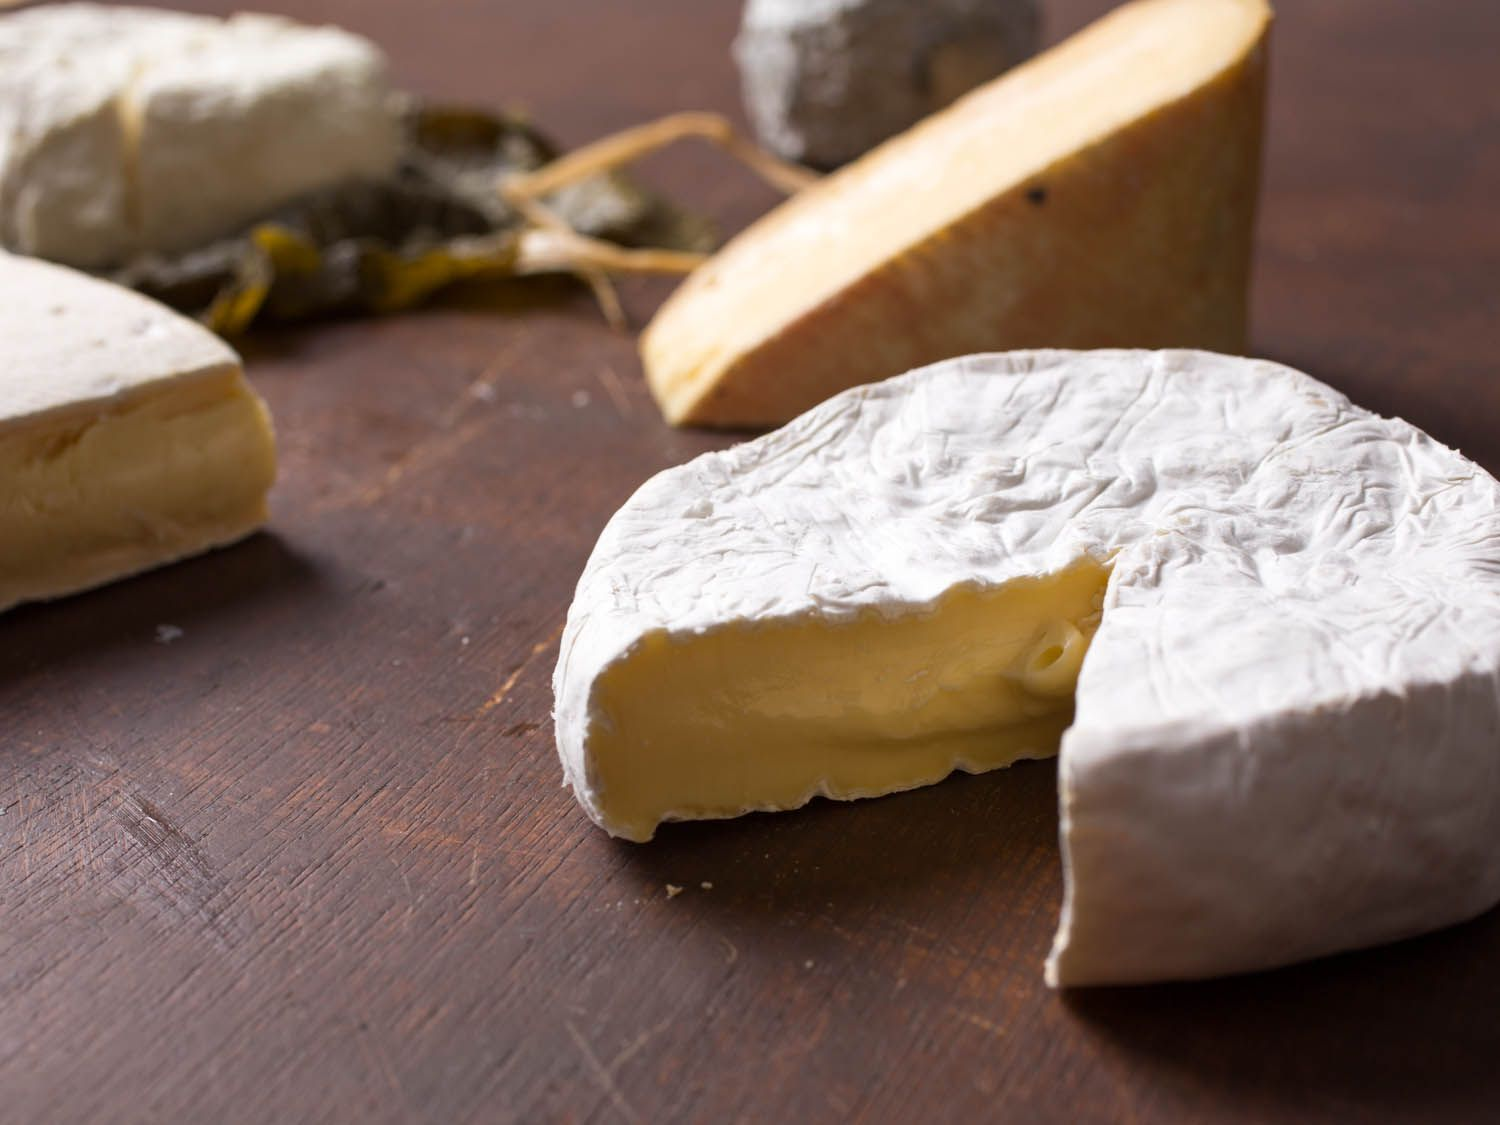 20141021-cheese101-southern-cheese-vicky-wasik-17.jpg